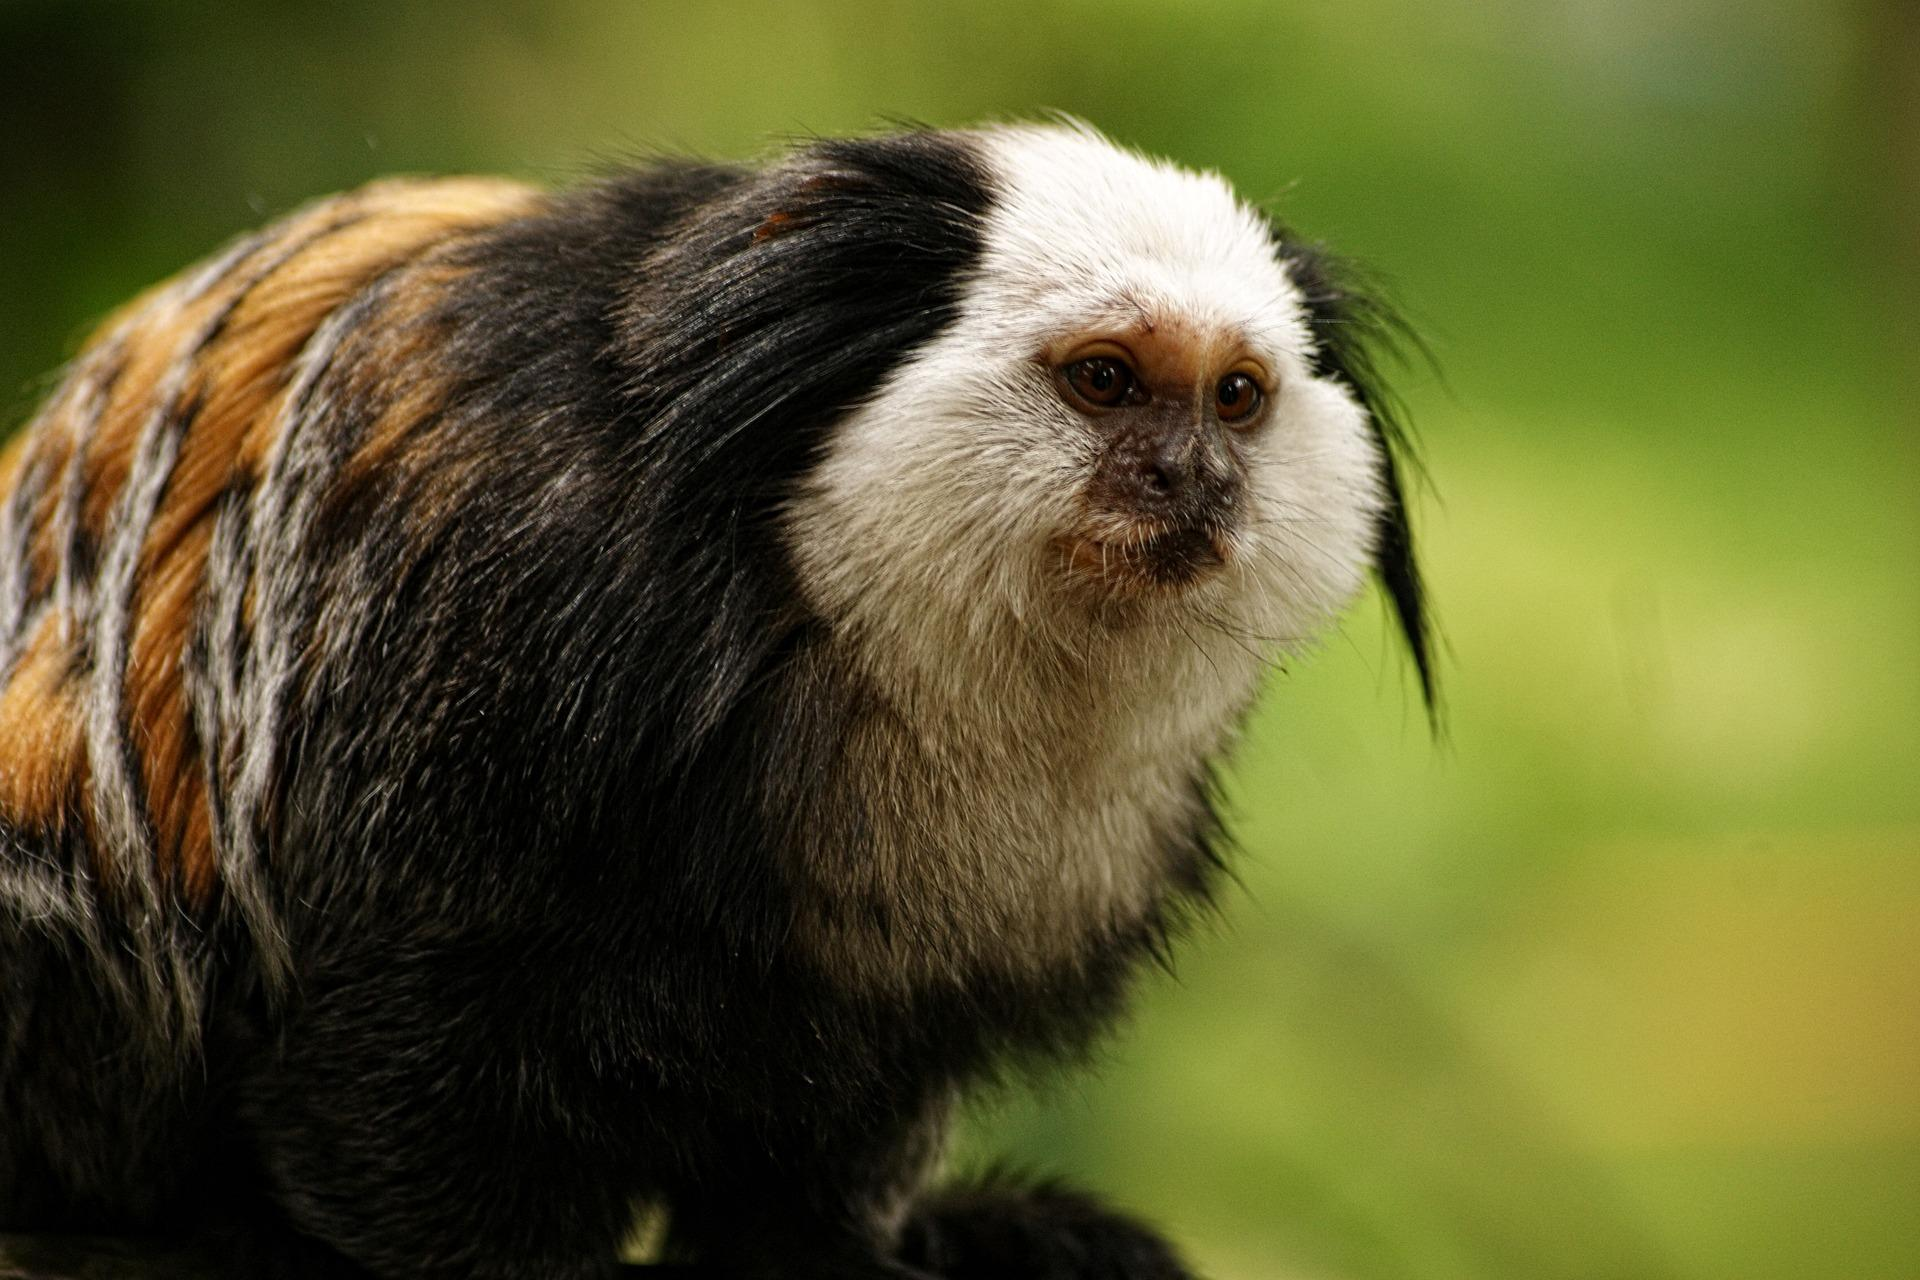 Monkey Wallpaper Hd For Android Apk Download